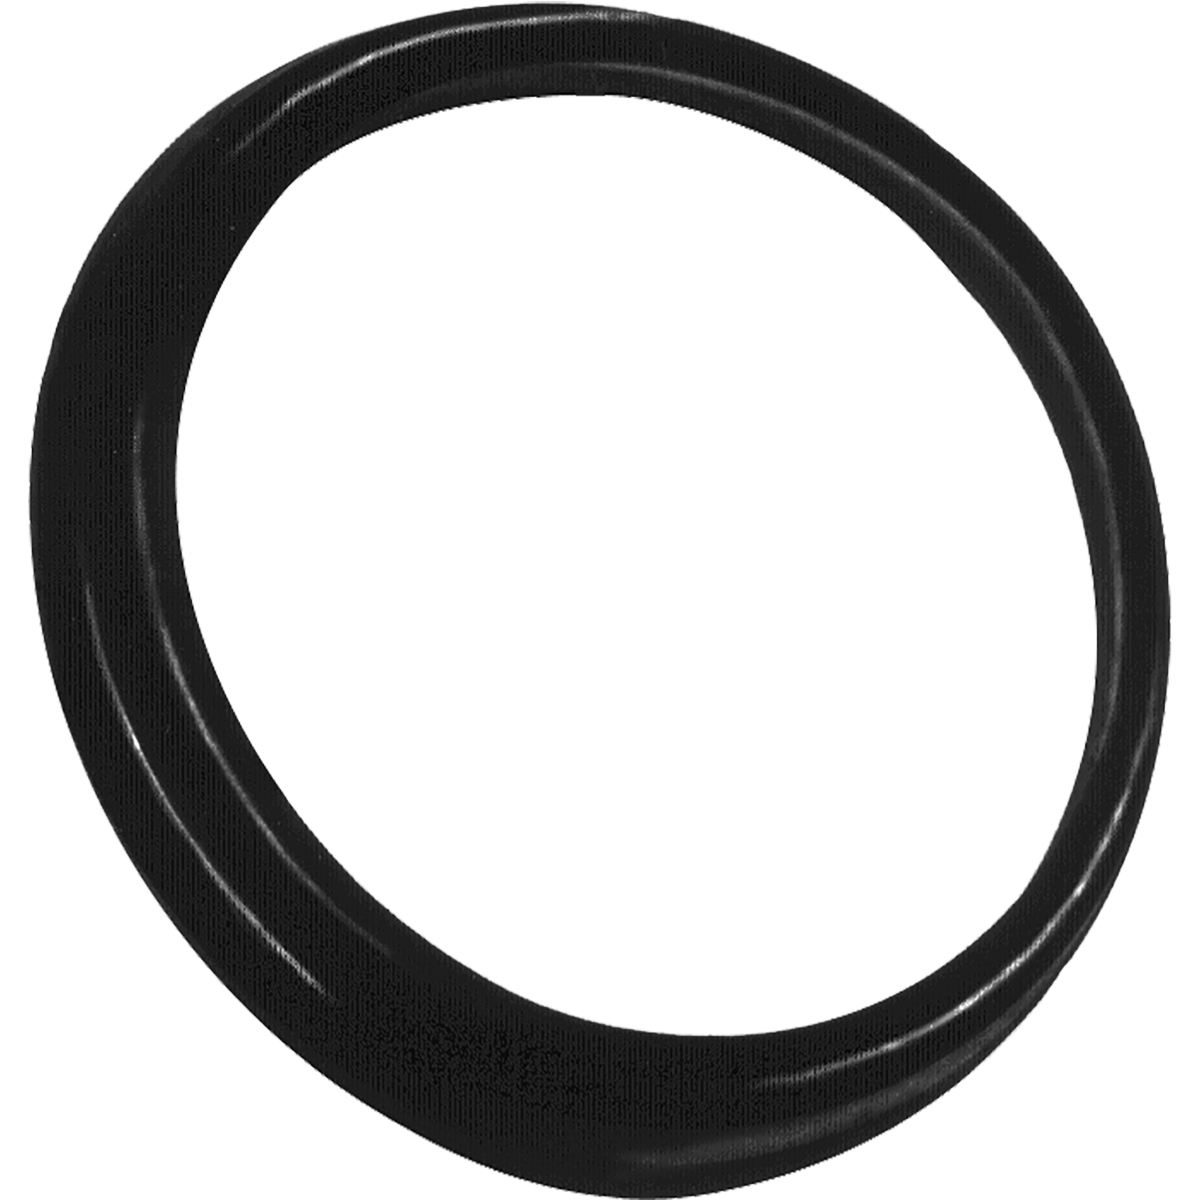 A/C x PVC - Used in an A/C sewer coupling to adapt to PVC sewer pipeNominal Sizes4 - 8 inchesWorking PressureUp to 10 psiPipe CompatibilityPlastic pipe